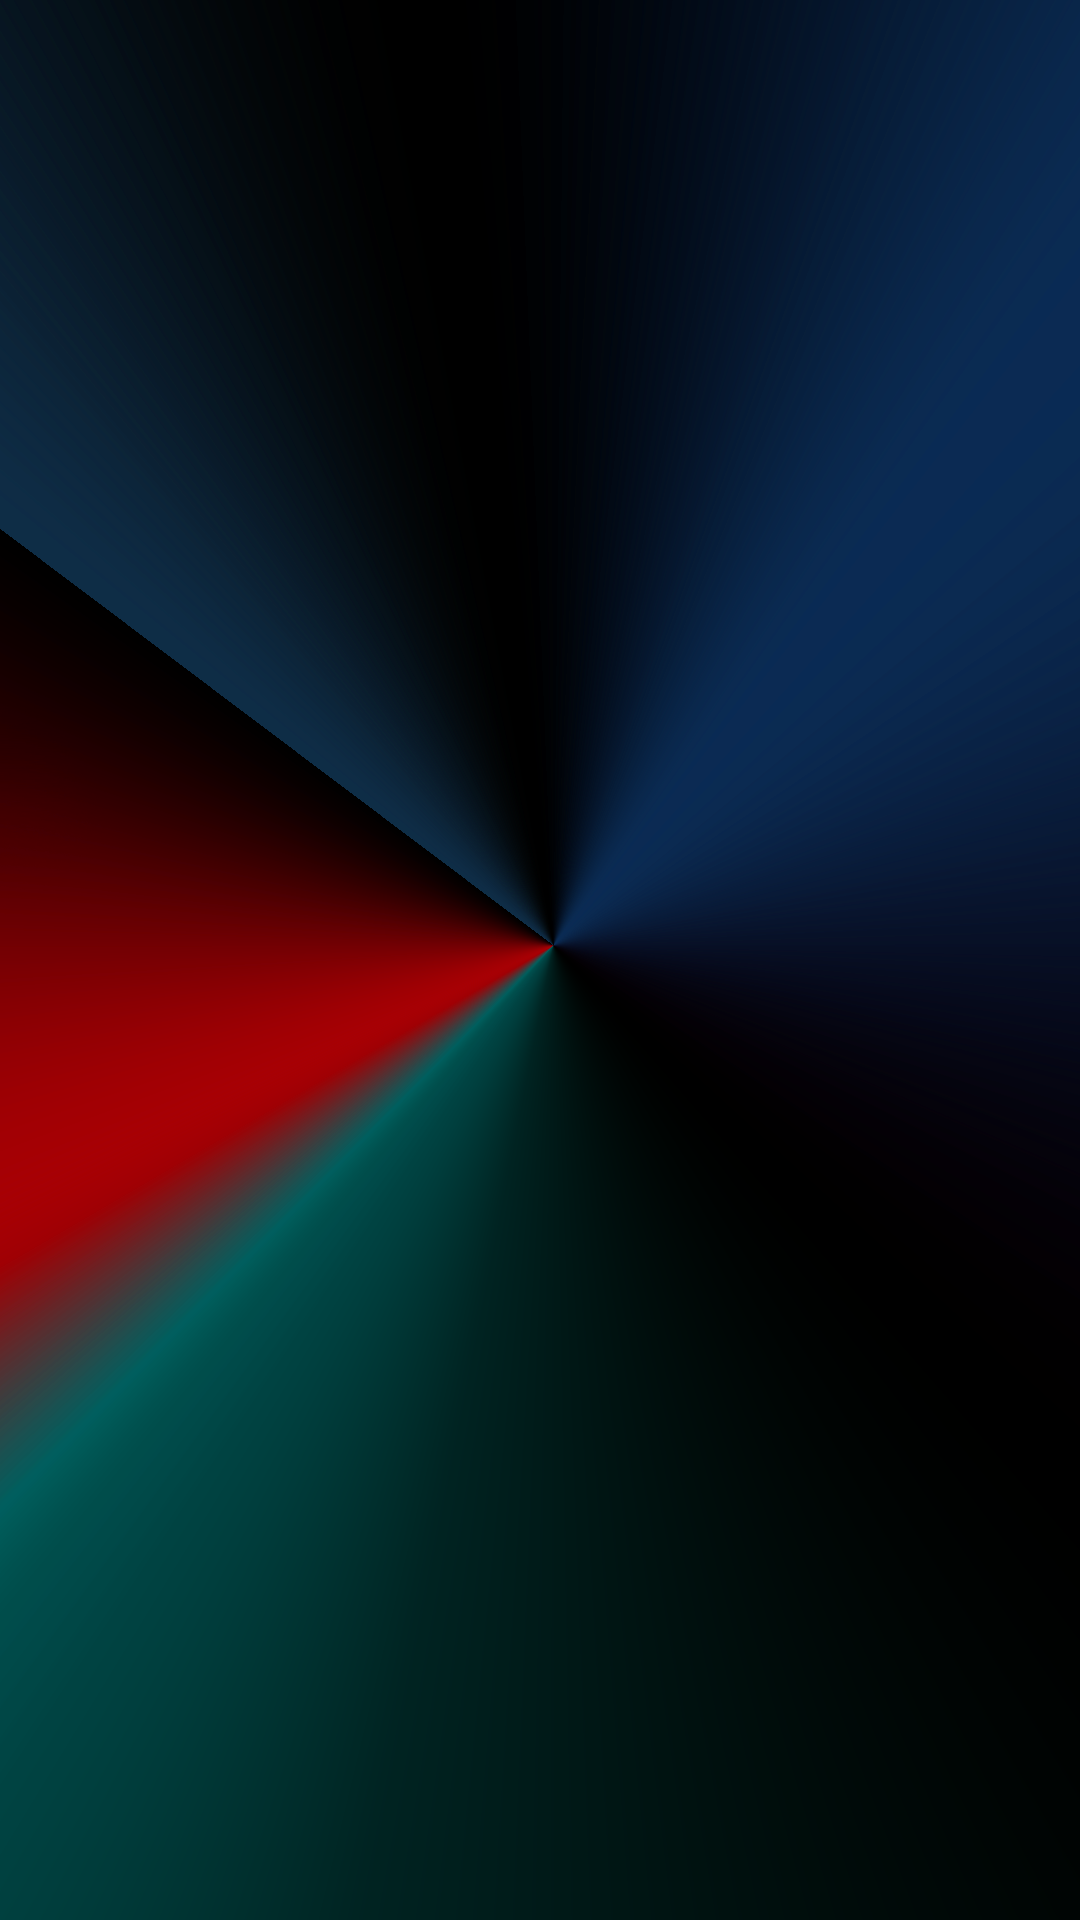 Gradient Red And Green Android Background Abstract Wallpaper Backgrounds Phone Wallpapers Green Wallpaper